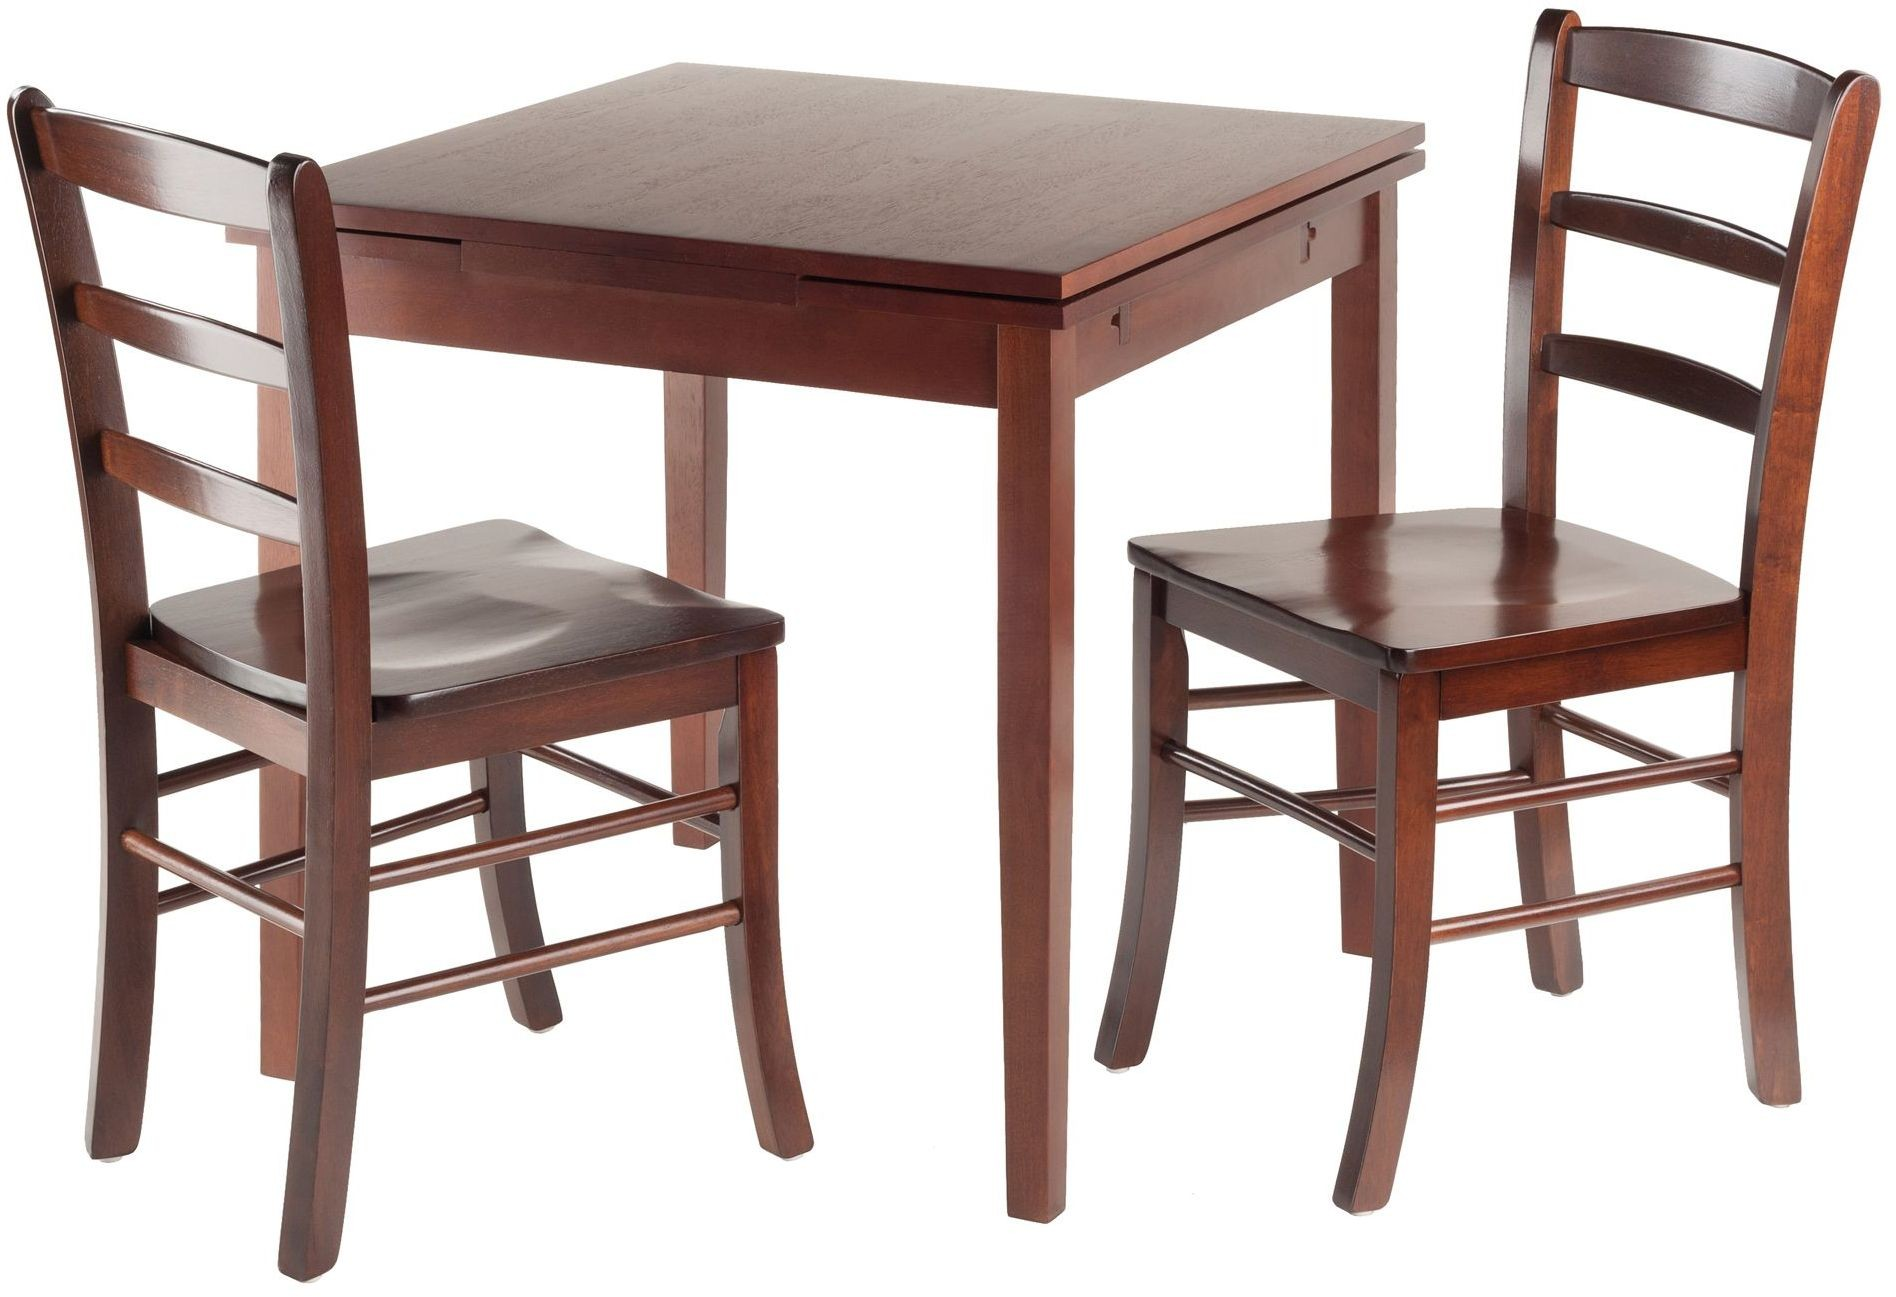 Pulman 3 piece extendable dining room set from winsomewood for 3 piece dining room set